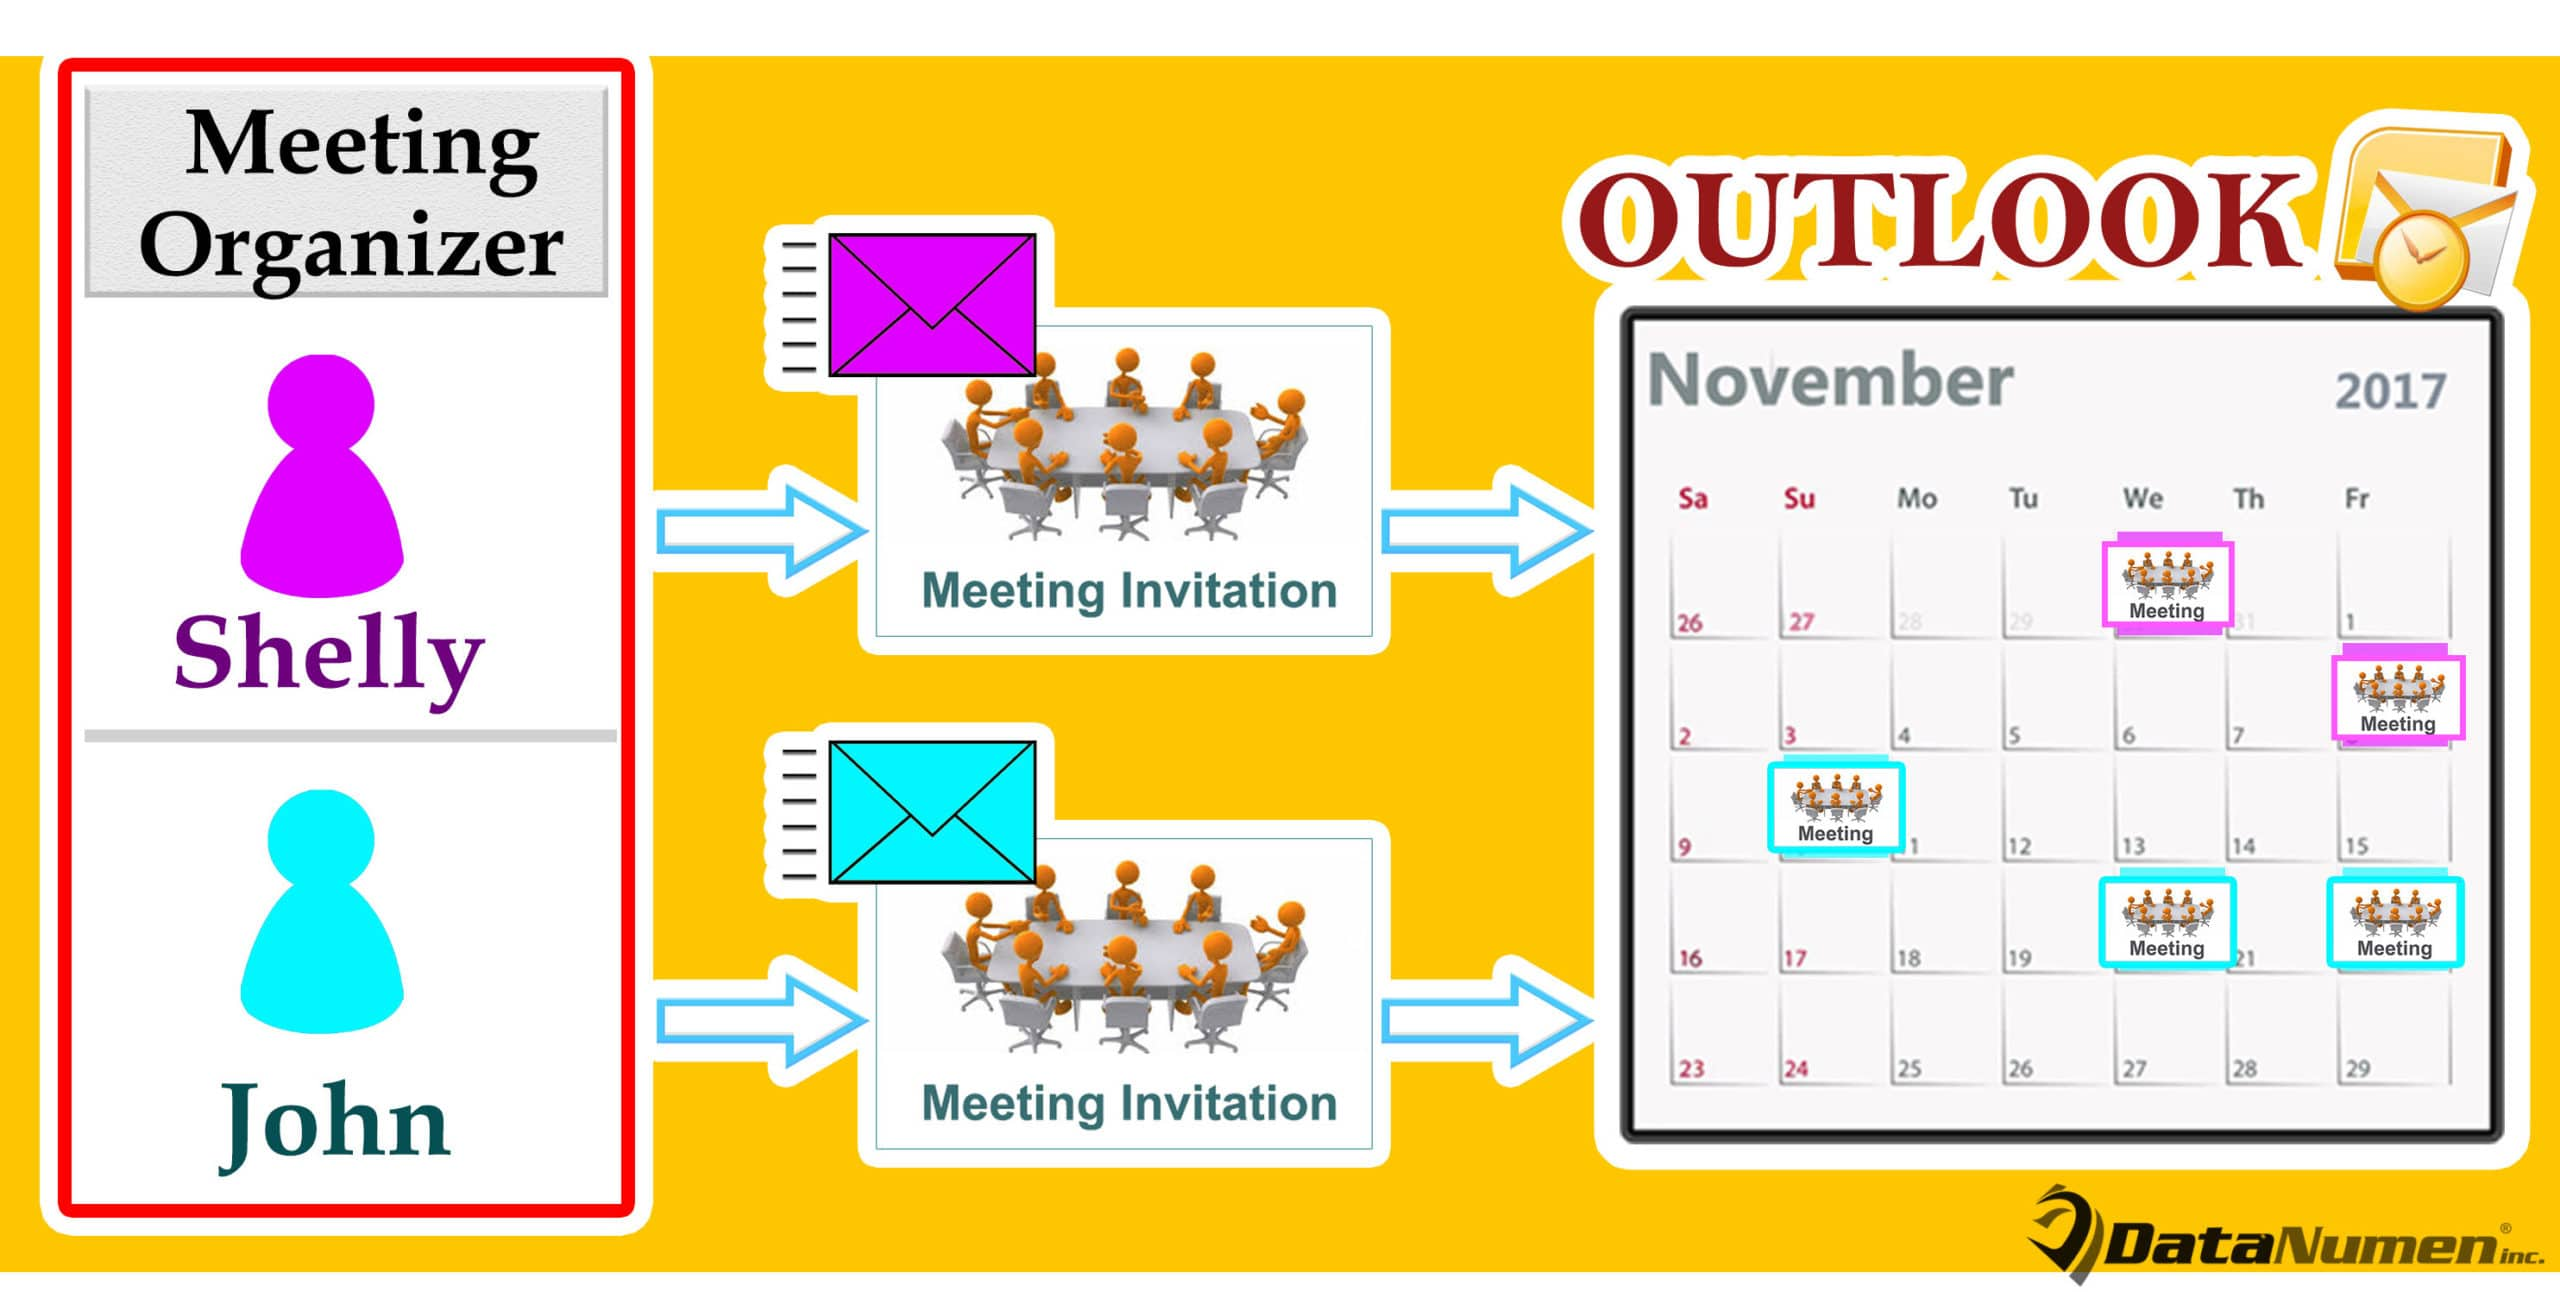 Auto Change the Colors of Incoming Meetings Based on Organizers in Outlook Calendar